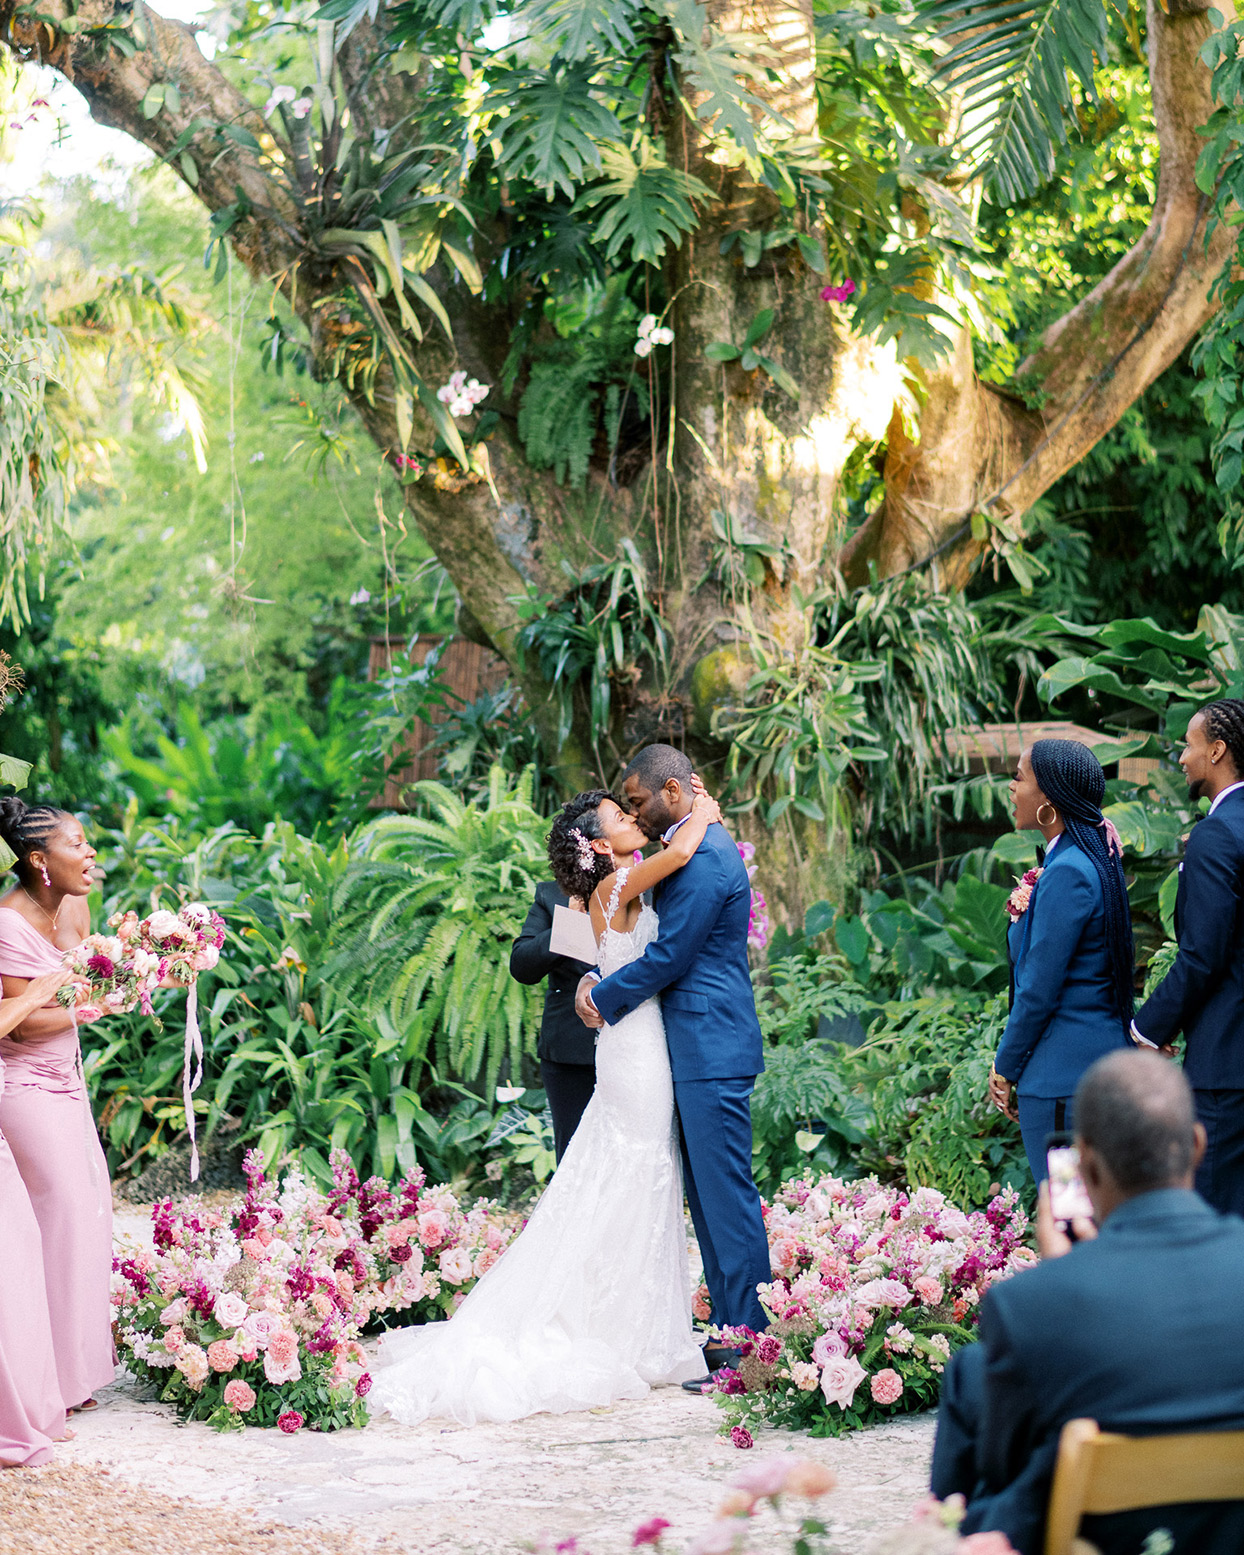 melissa lindsey wedding couple first kiss under tropical tree